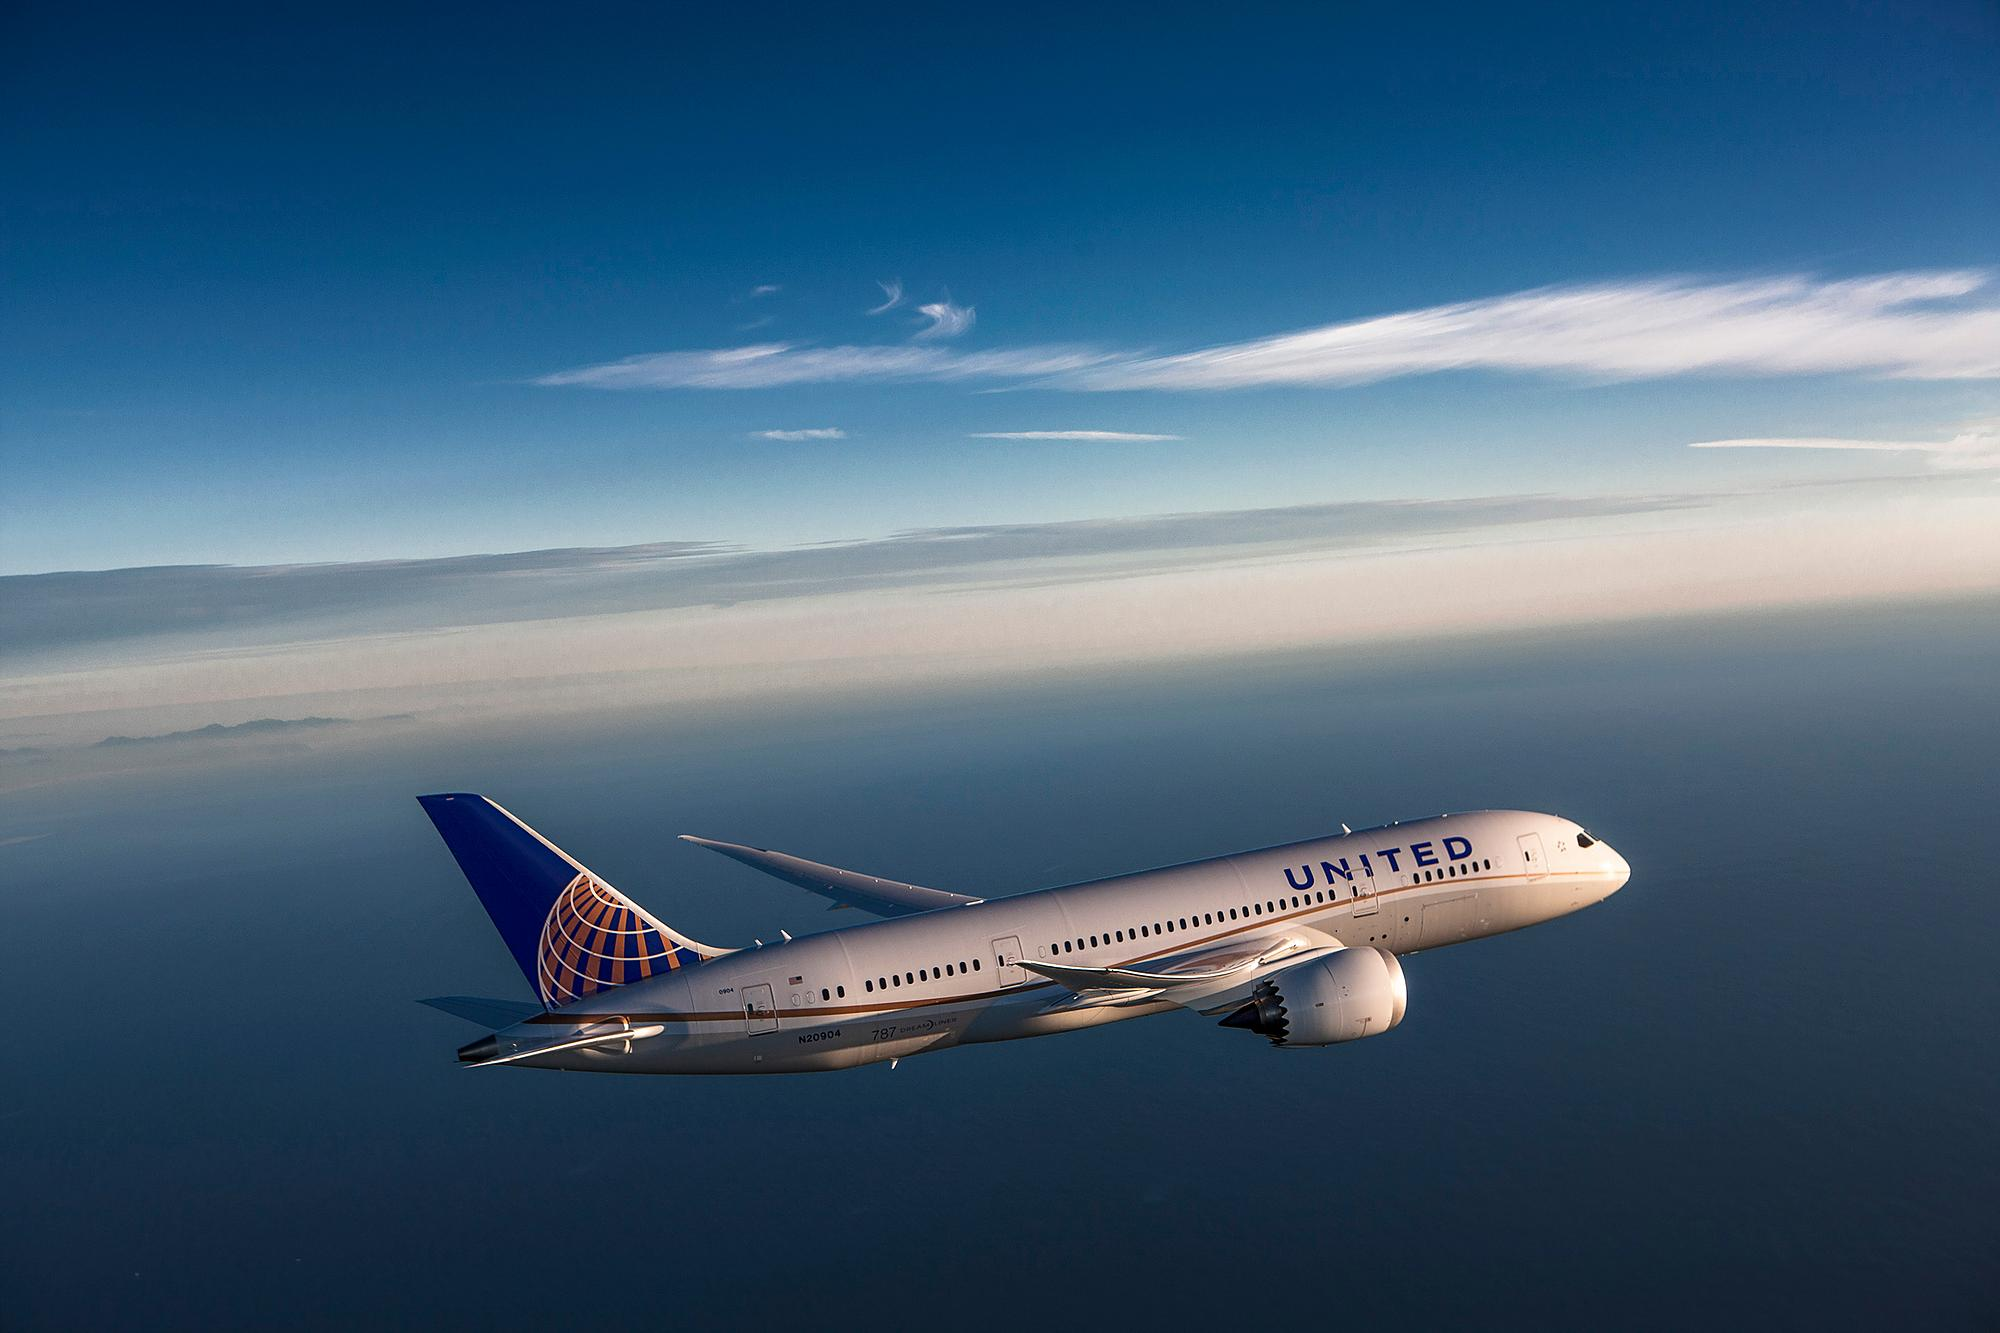 Partnership With United Airlines